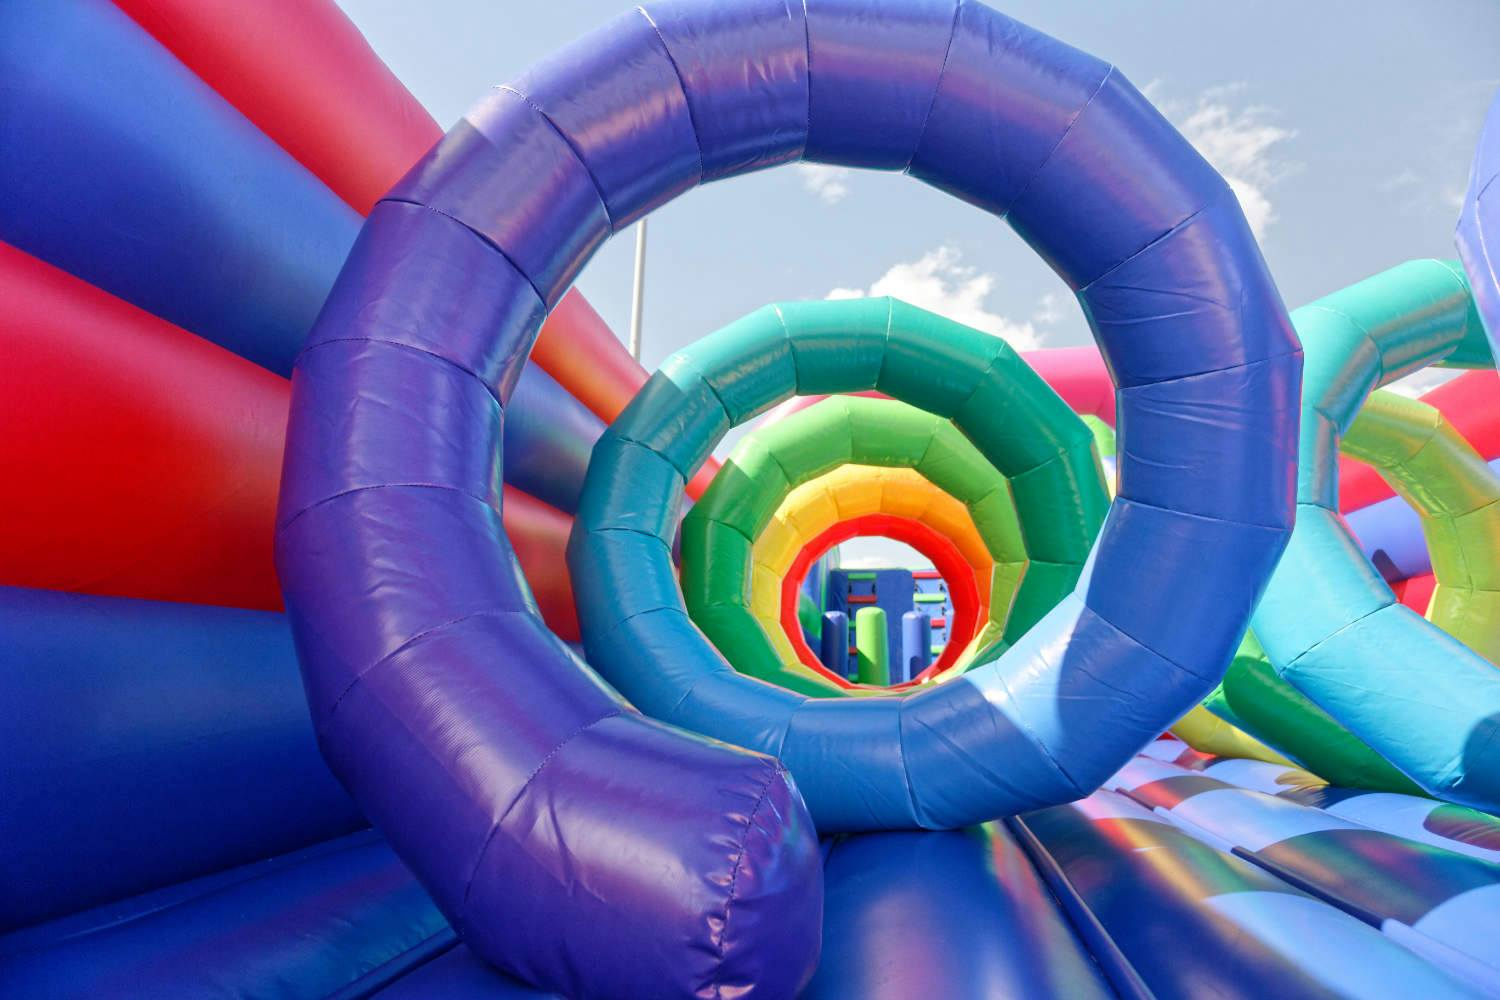 Inflatable bounce house spiral in all different colors